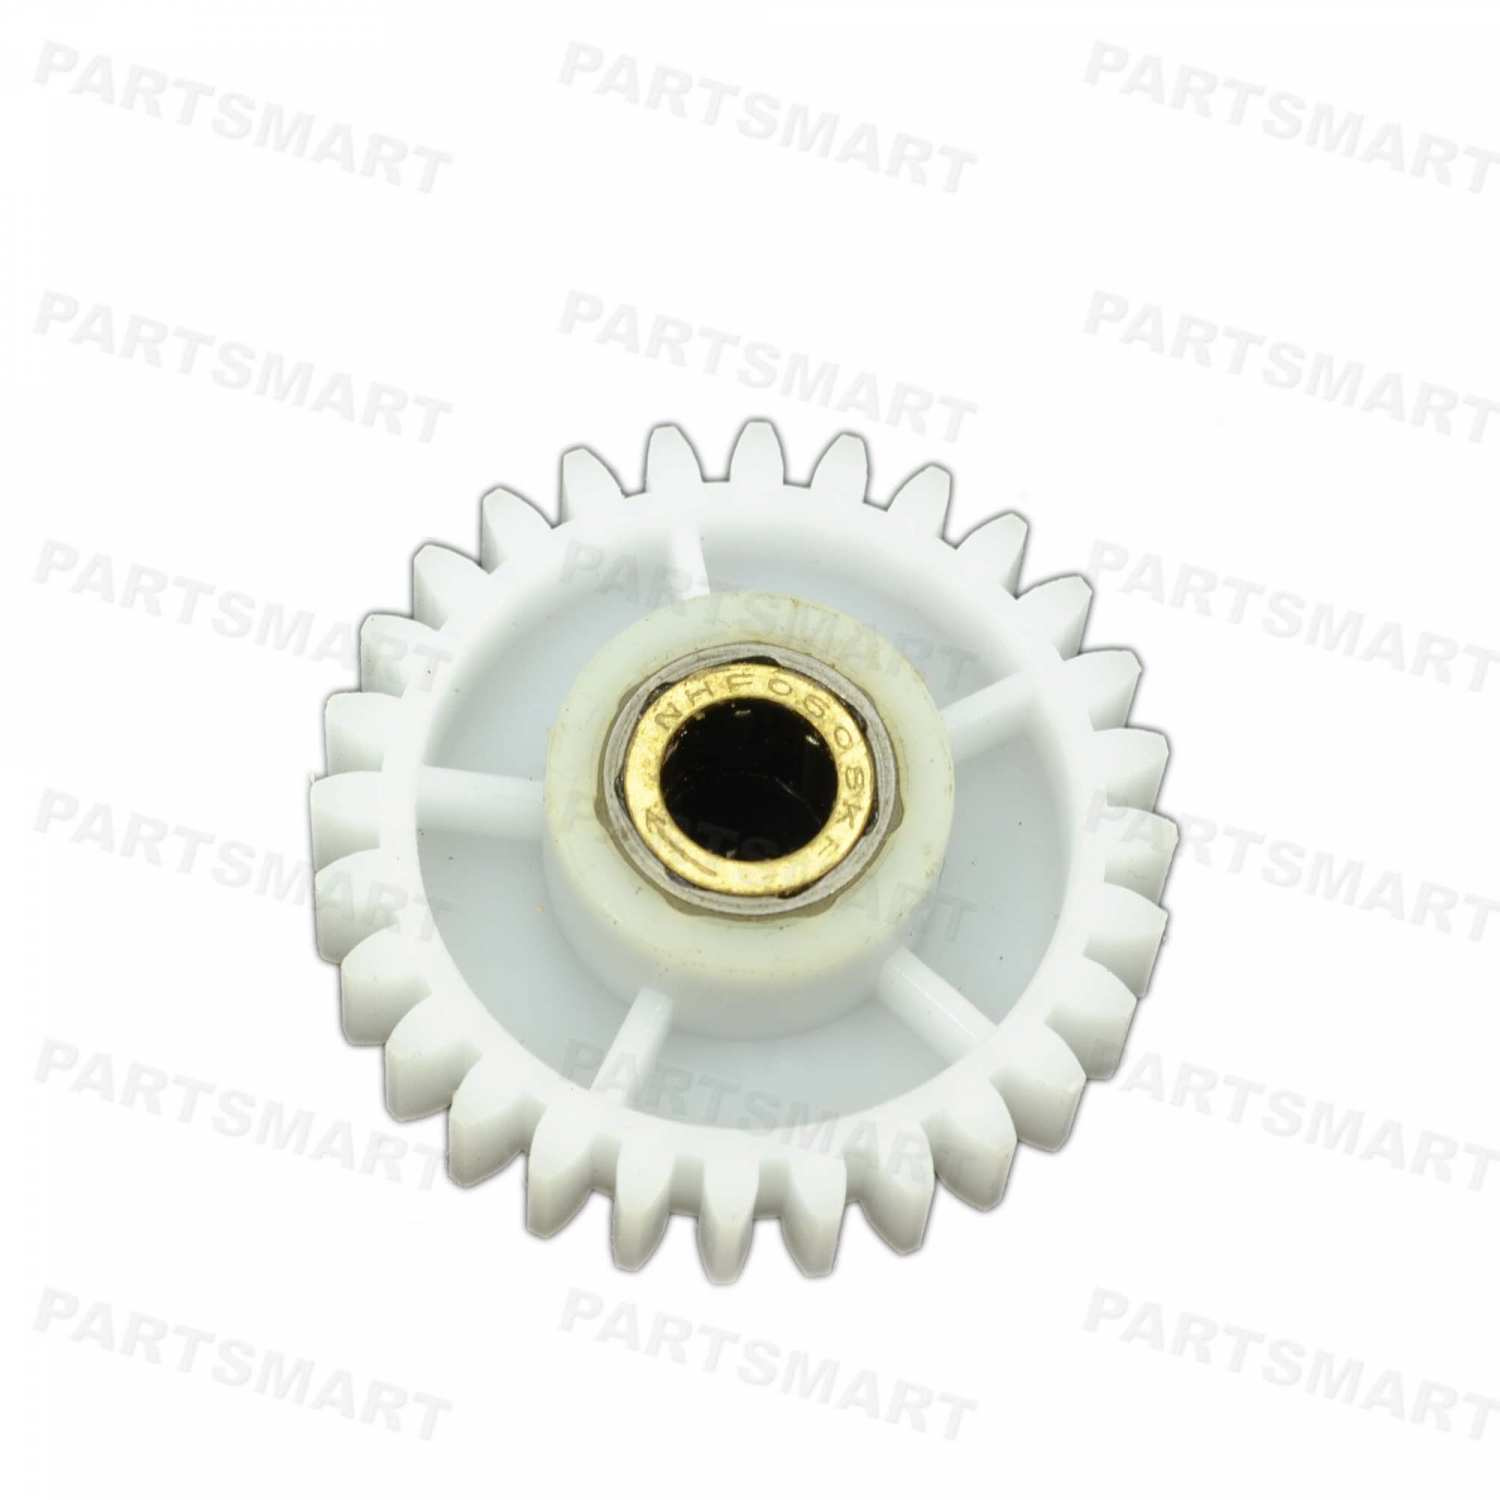 RS6-0219-000 Fuser Gear (28T) for HP Color LaserJet 4500